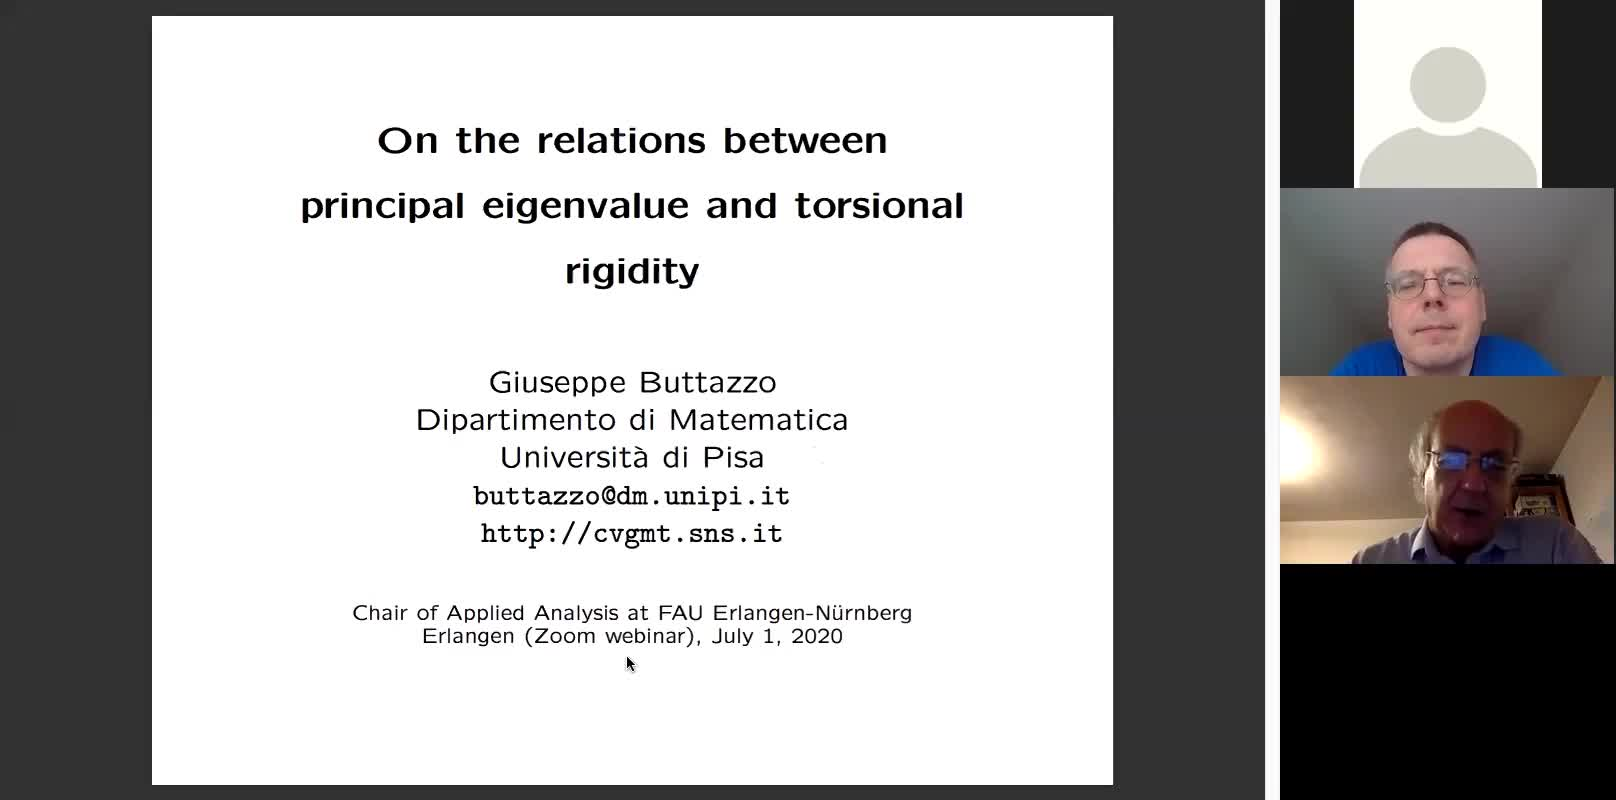 On the relations between principal eigenvalue and torsional rigidity preview image